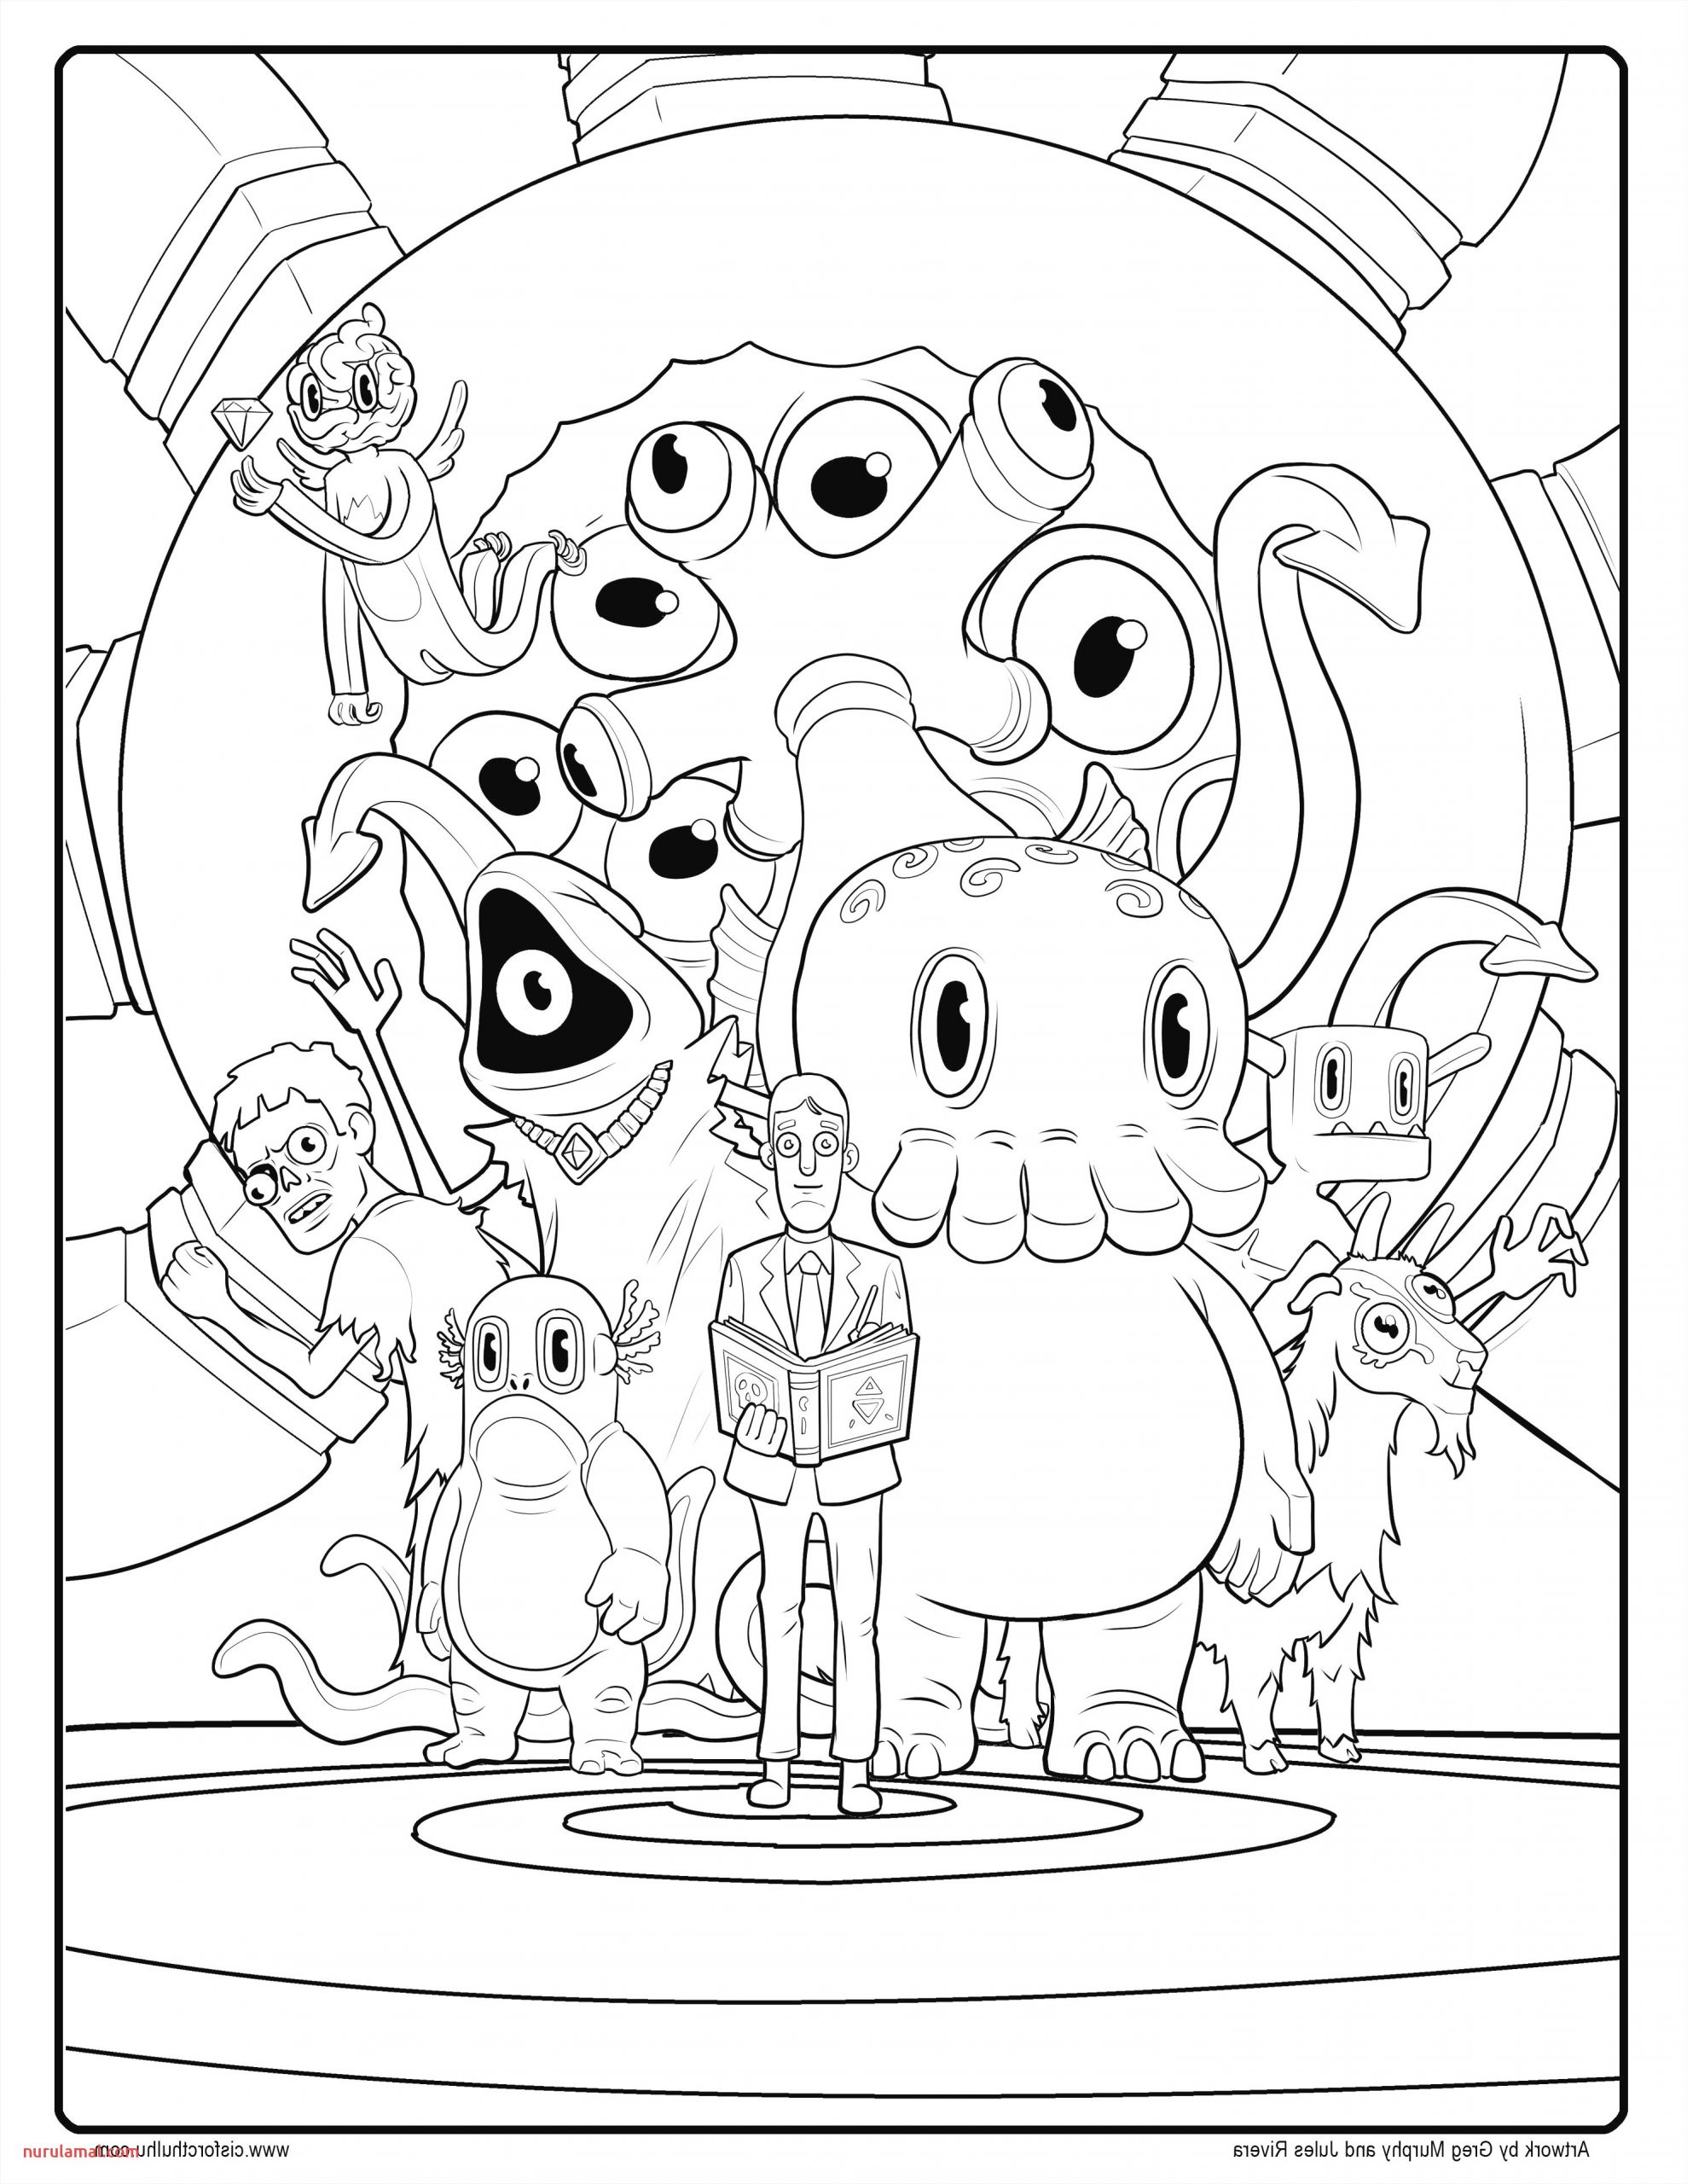 21 Cool Gallery Mice Coloring Page